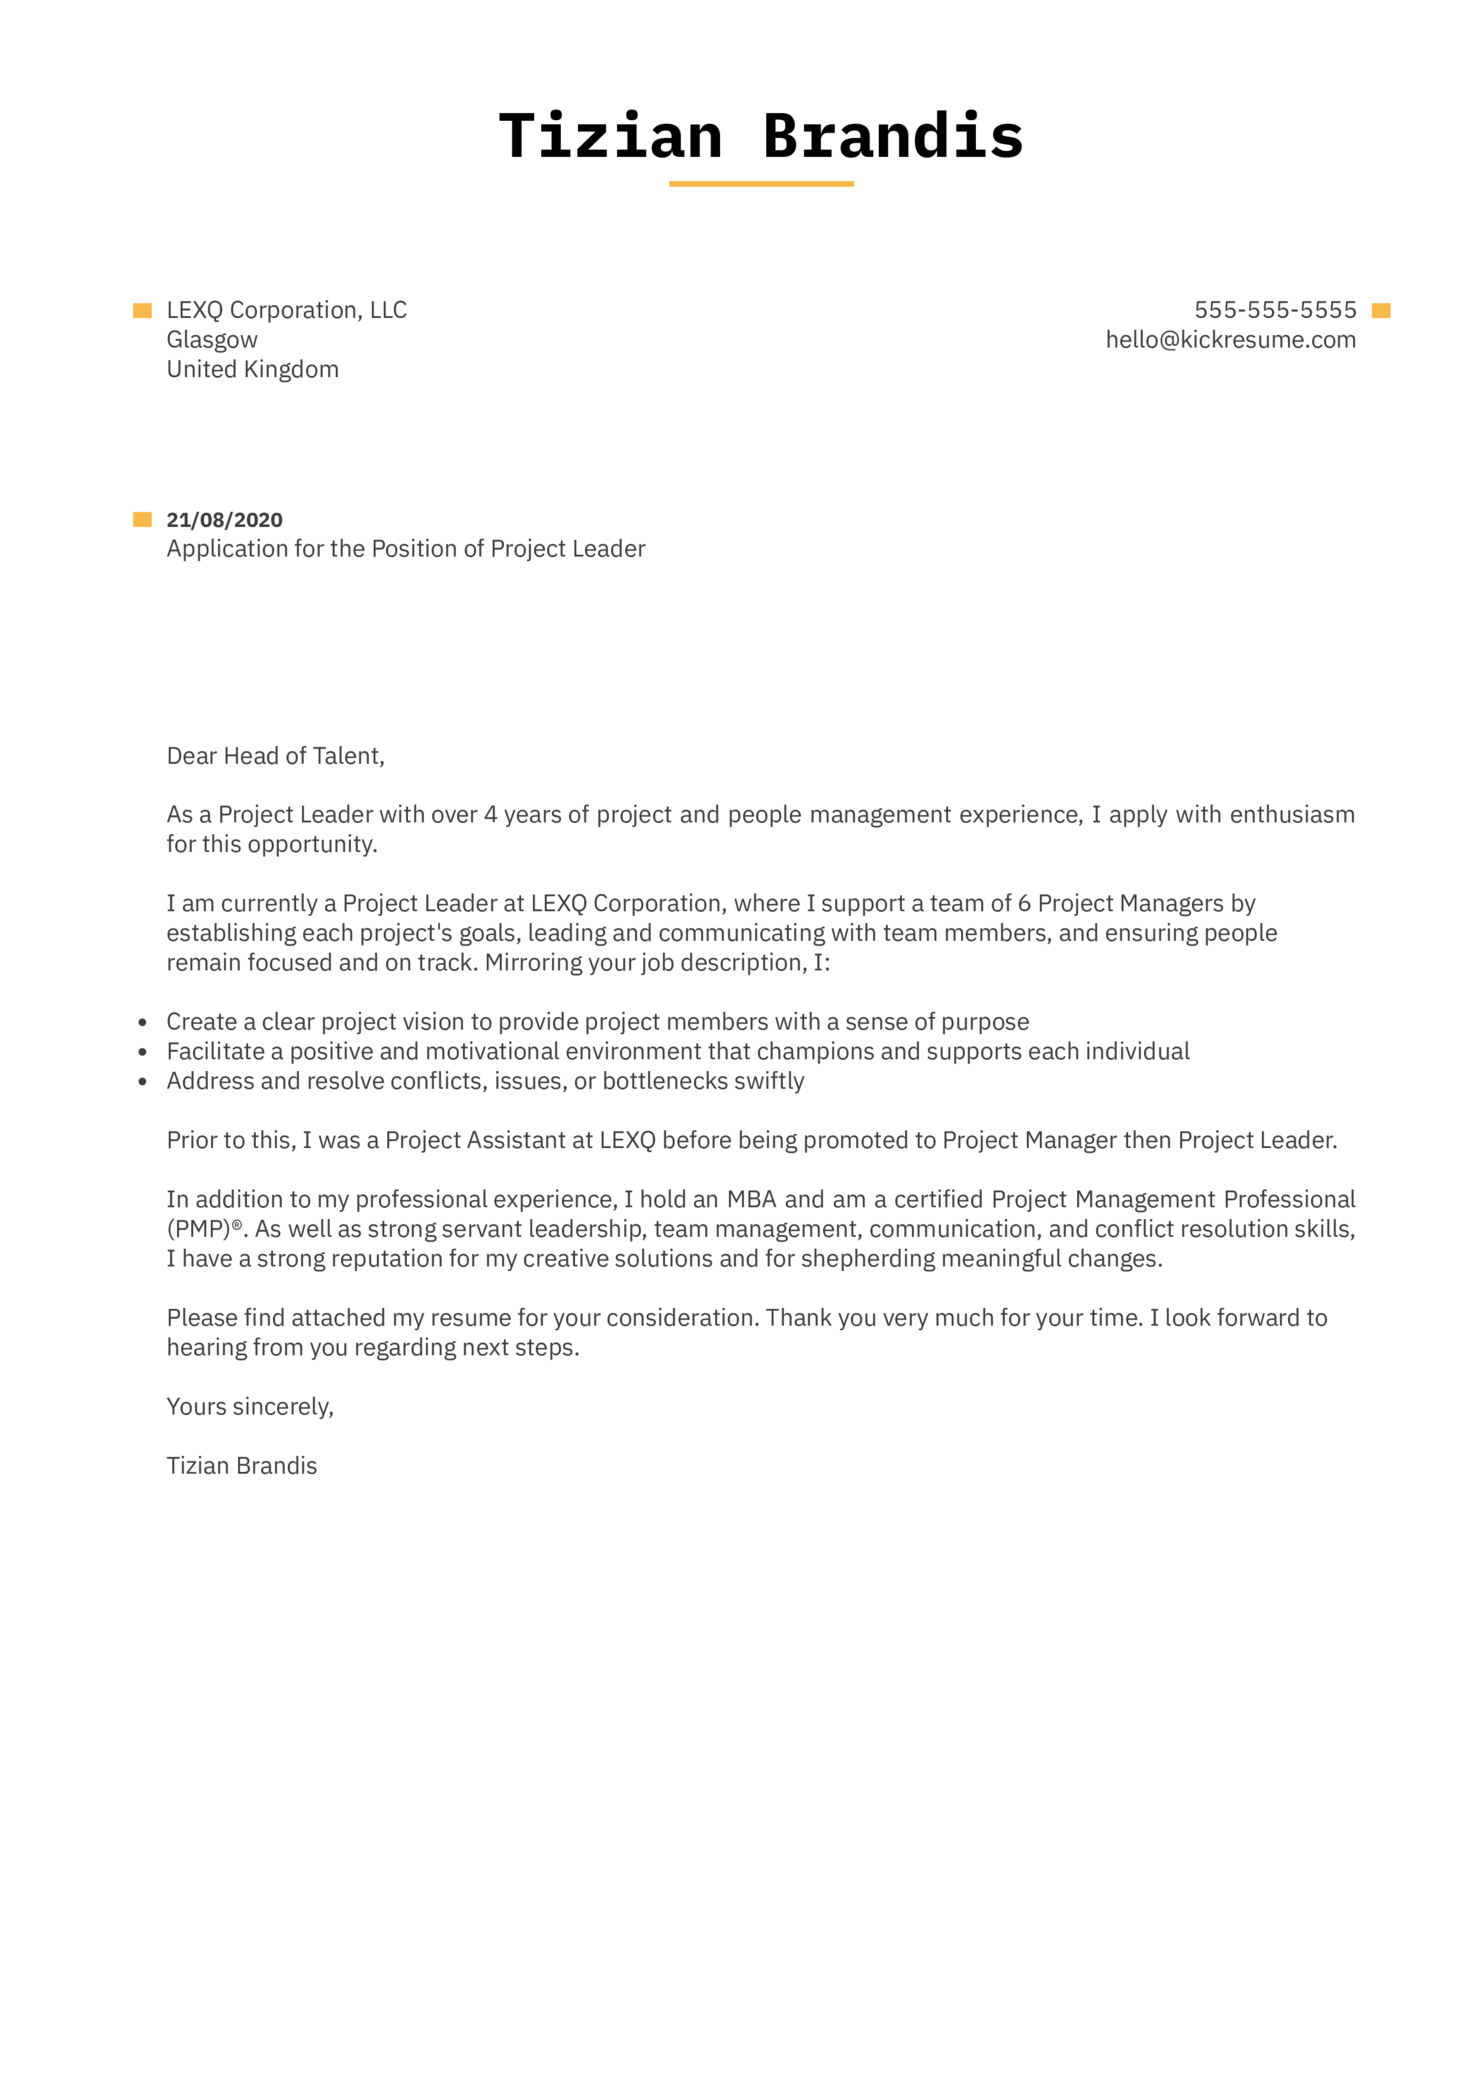 Project Leader Cover Letter Example